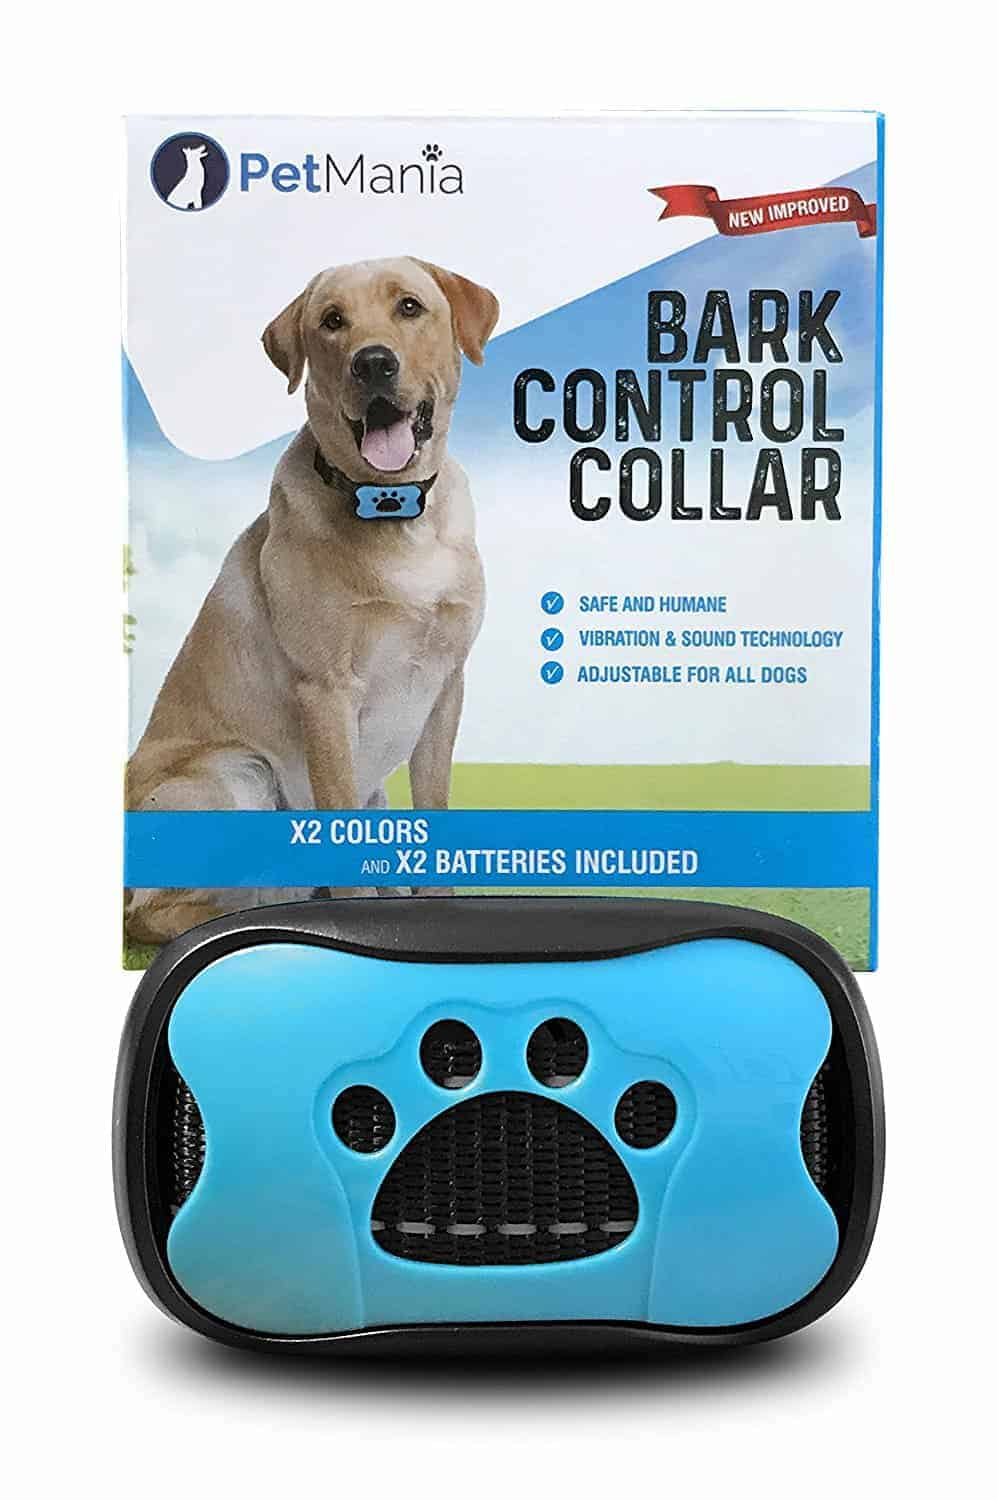 Best Anti-Bark Collars for Small Dogs – Pet Mania